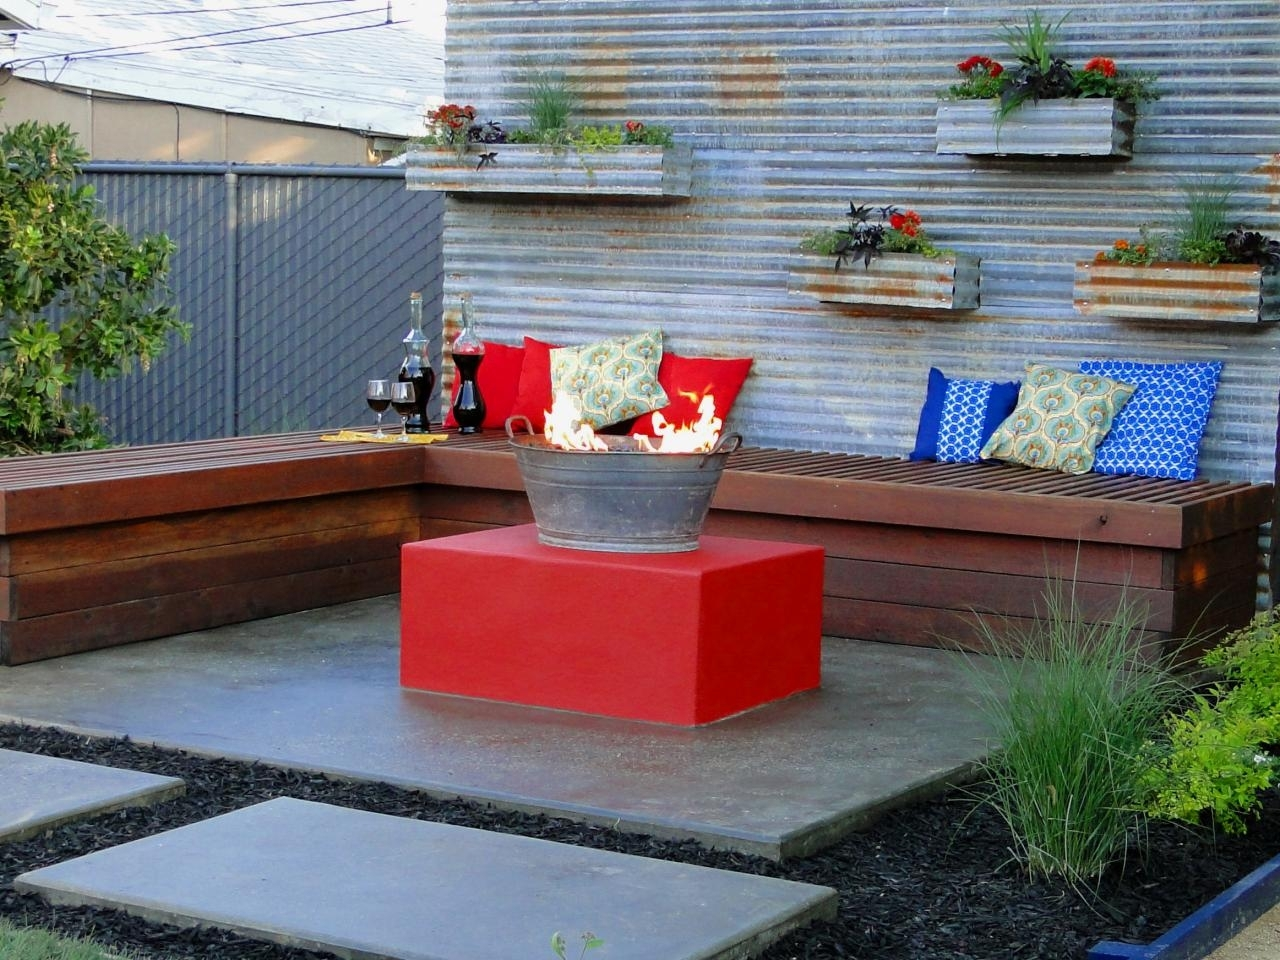 Image of: 66 Fire Pit And Outdoor Fireplace Ideas Diy Network Blog Made With Regard To Inexpensive Outdoor Fireplace Popular Today Inexpensive Outdoor Fireplace